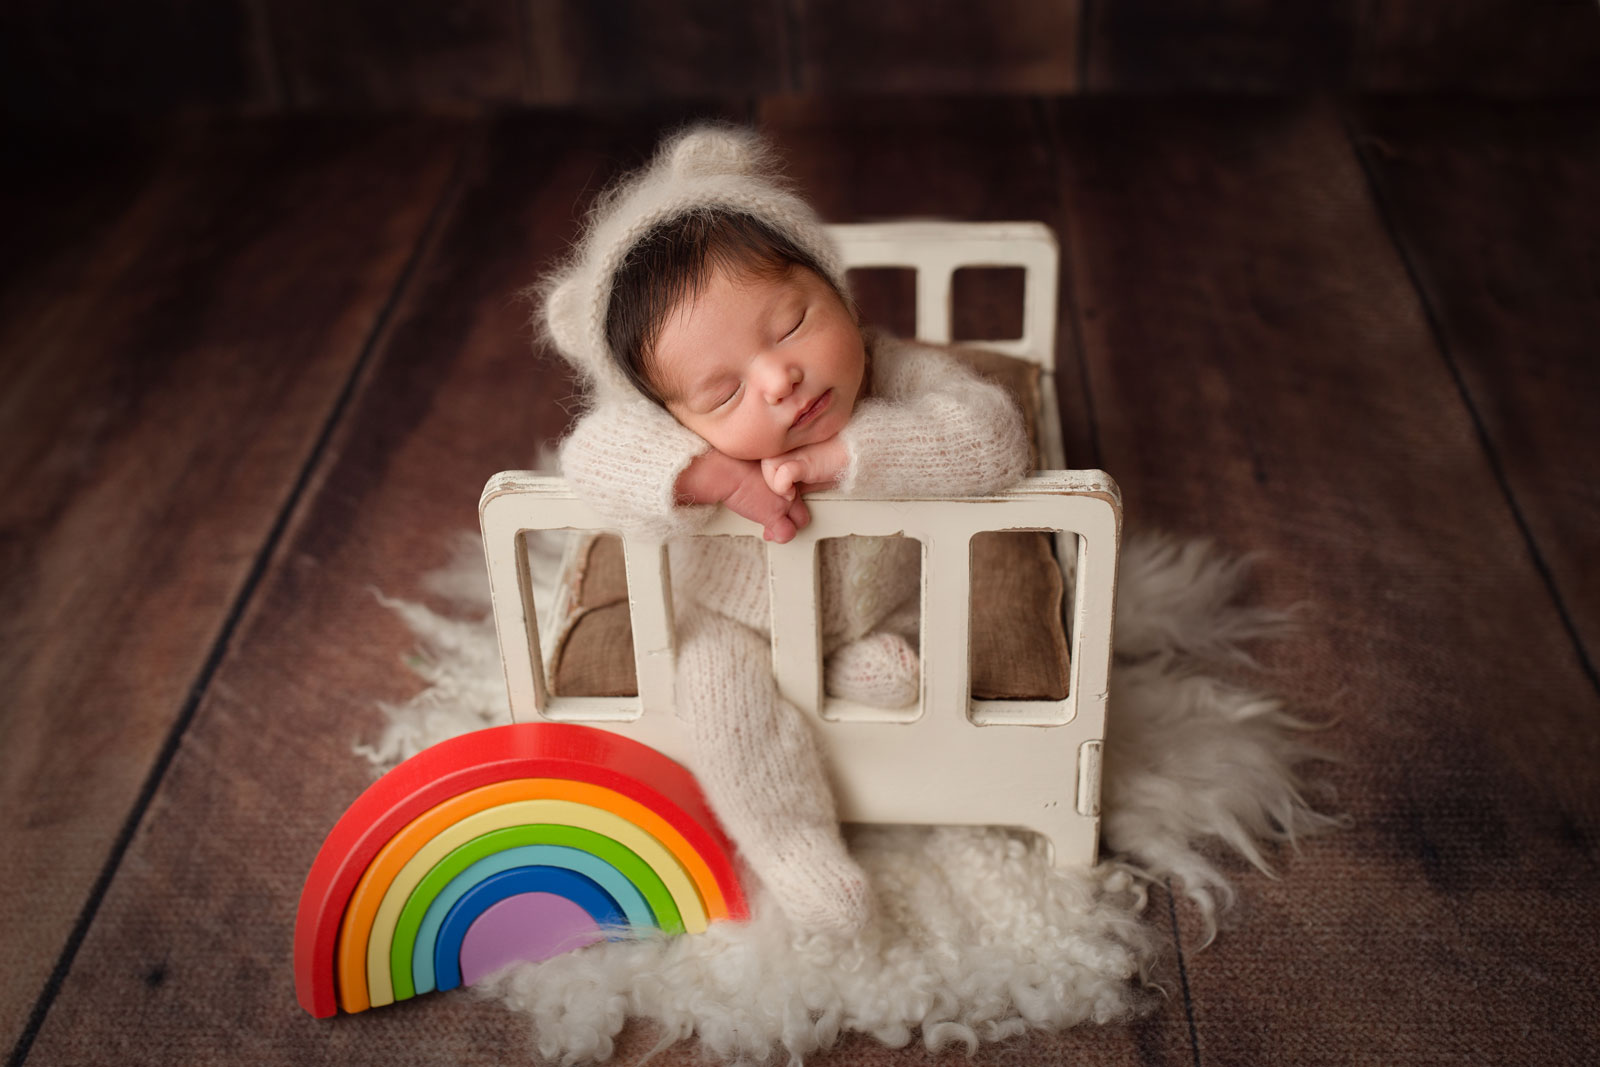 Pictures of rainbow babies with props